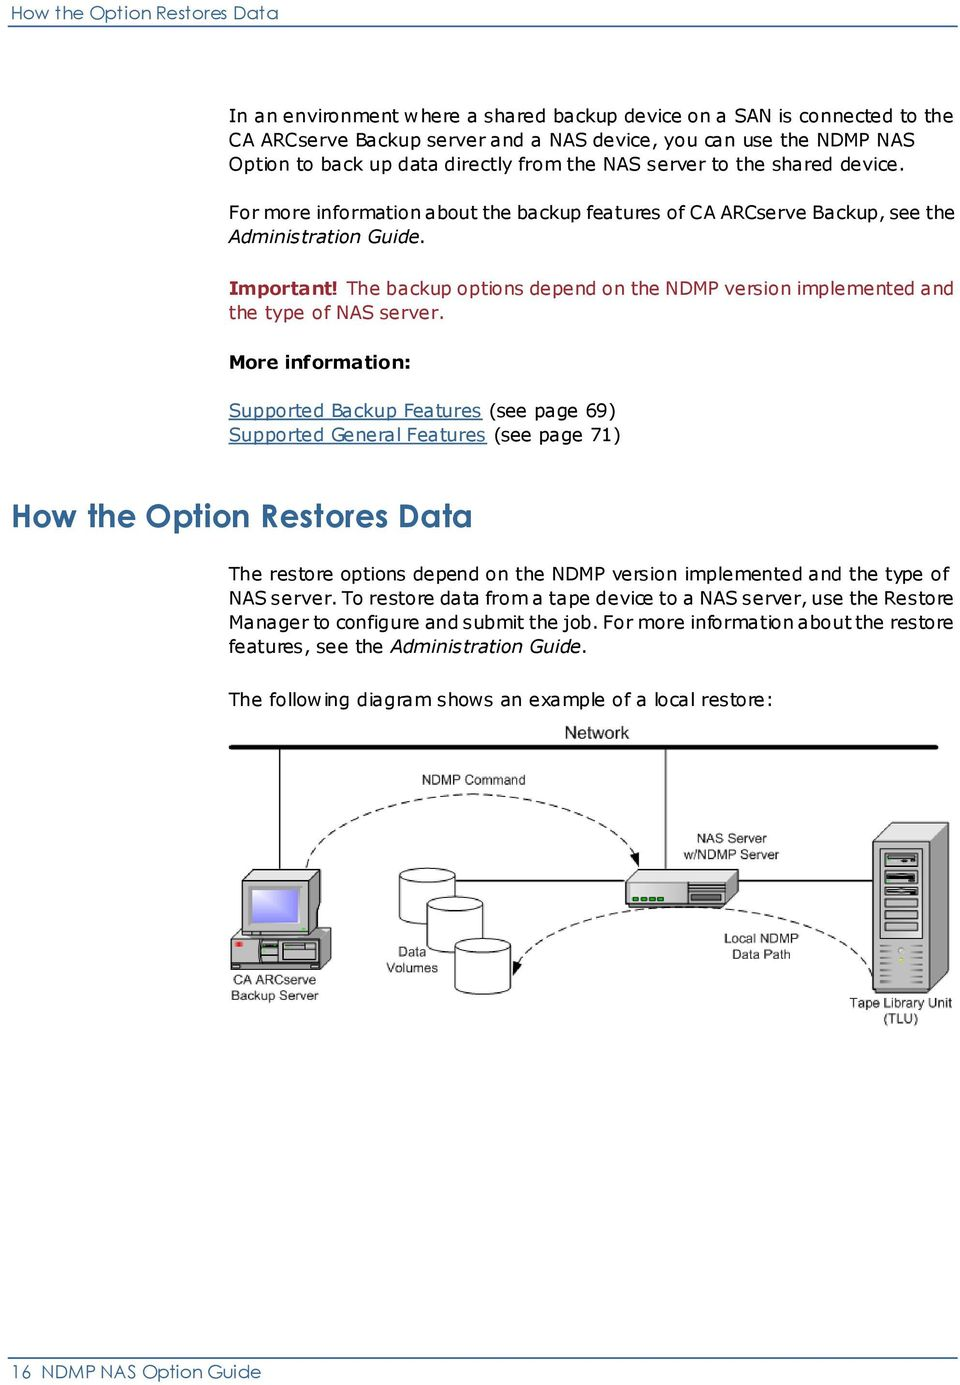 The backup options depend on the NDMP version implemented and the type of NAS server.